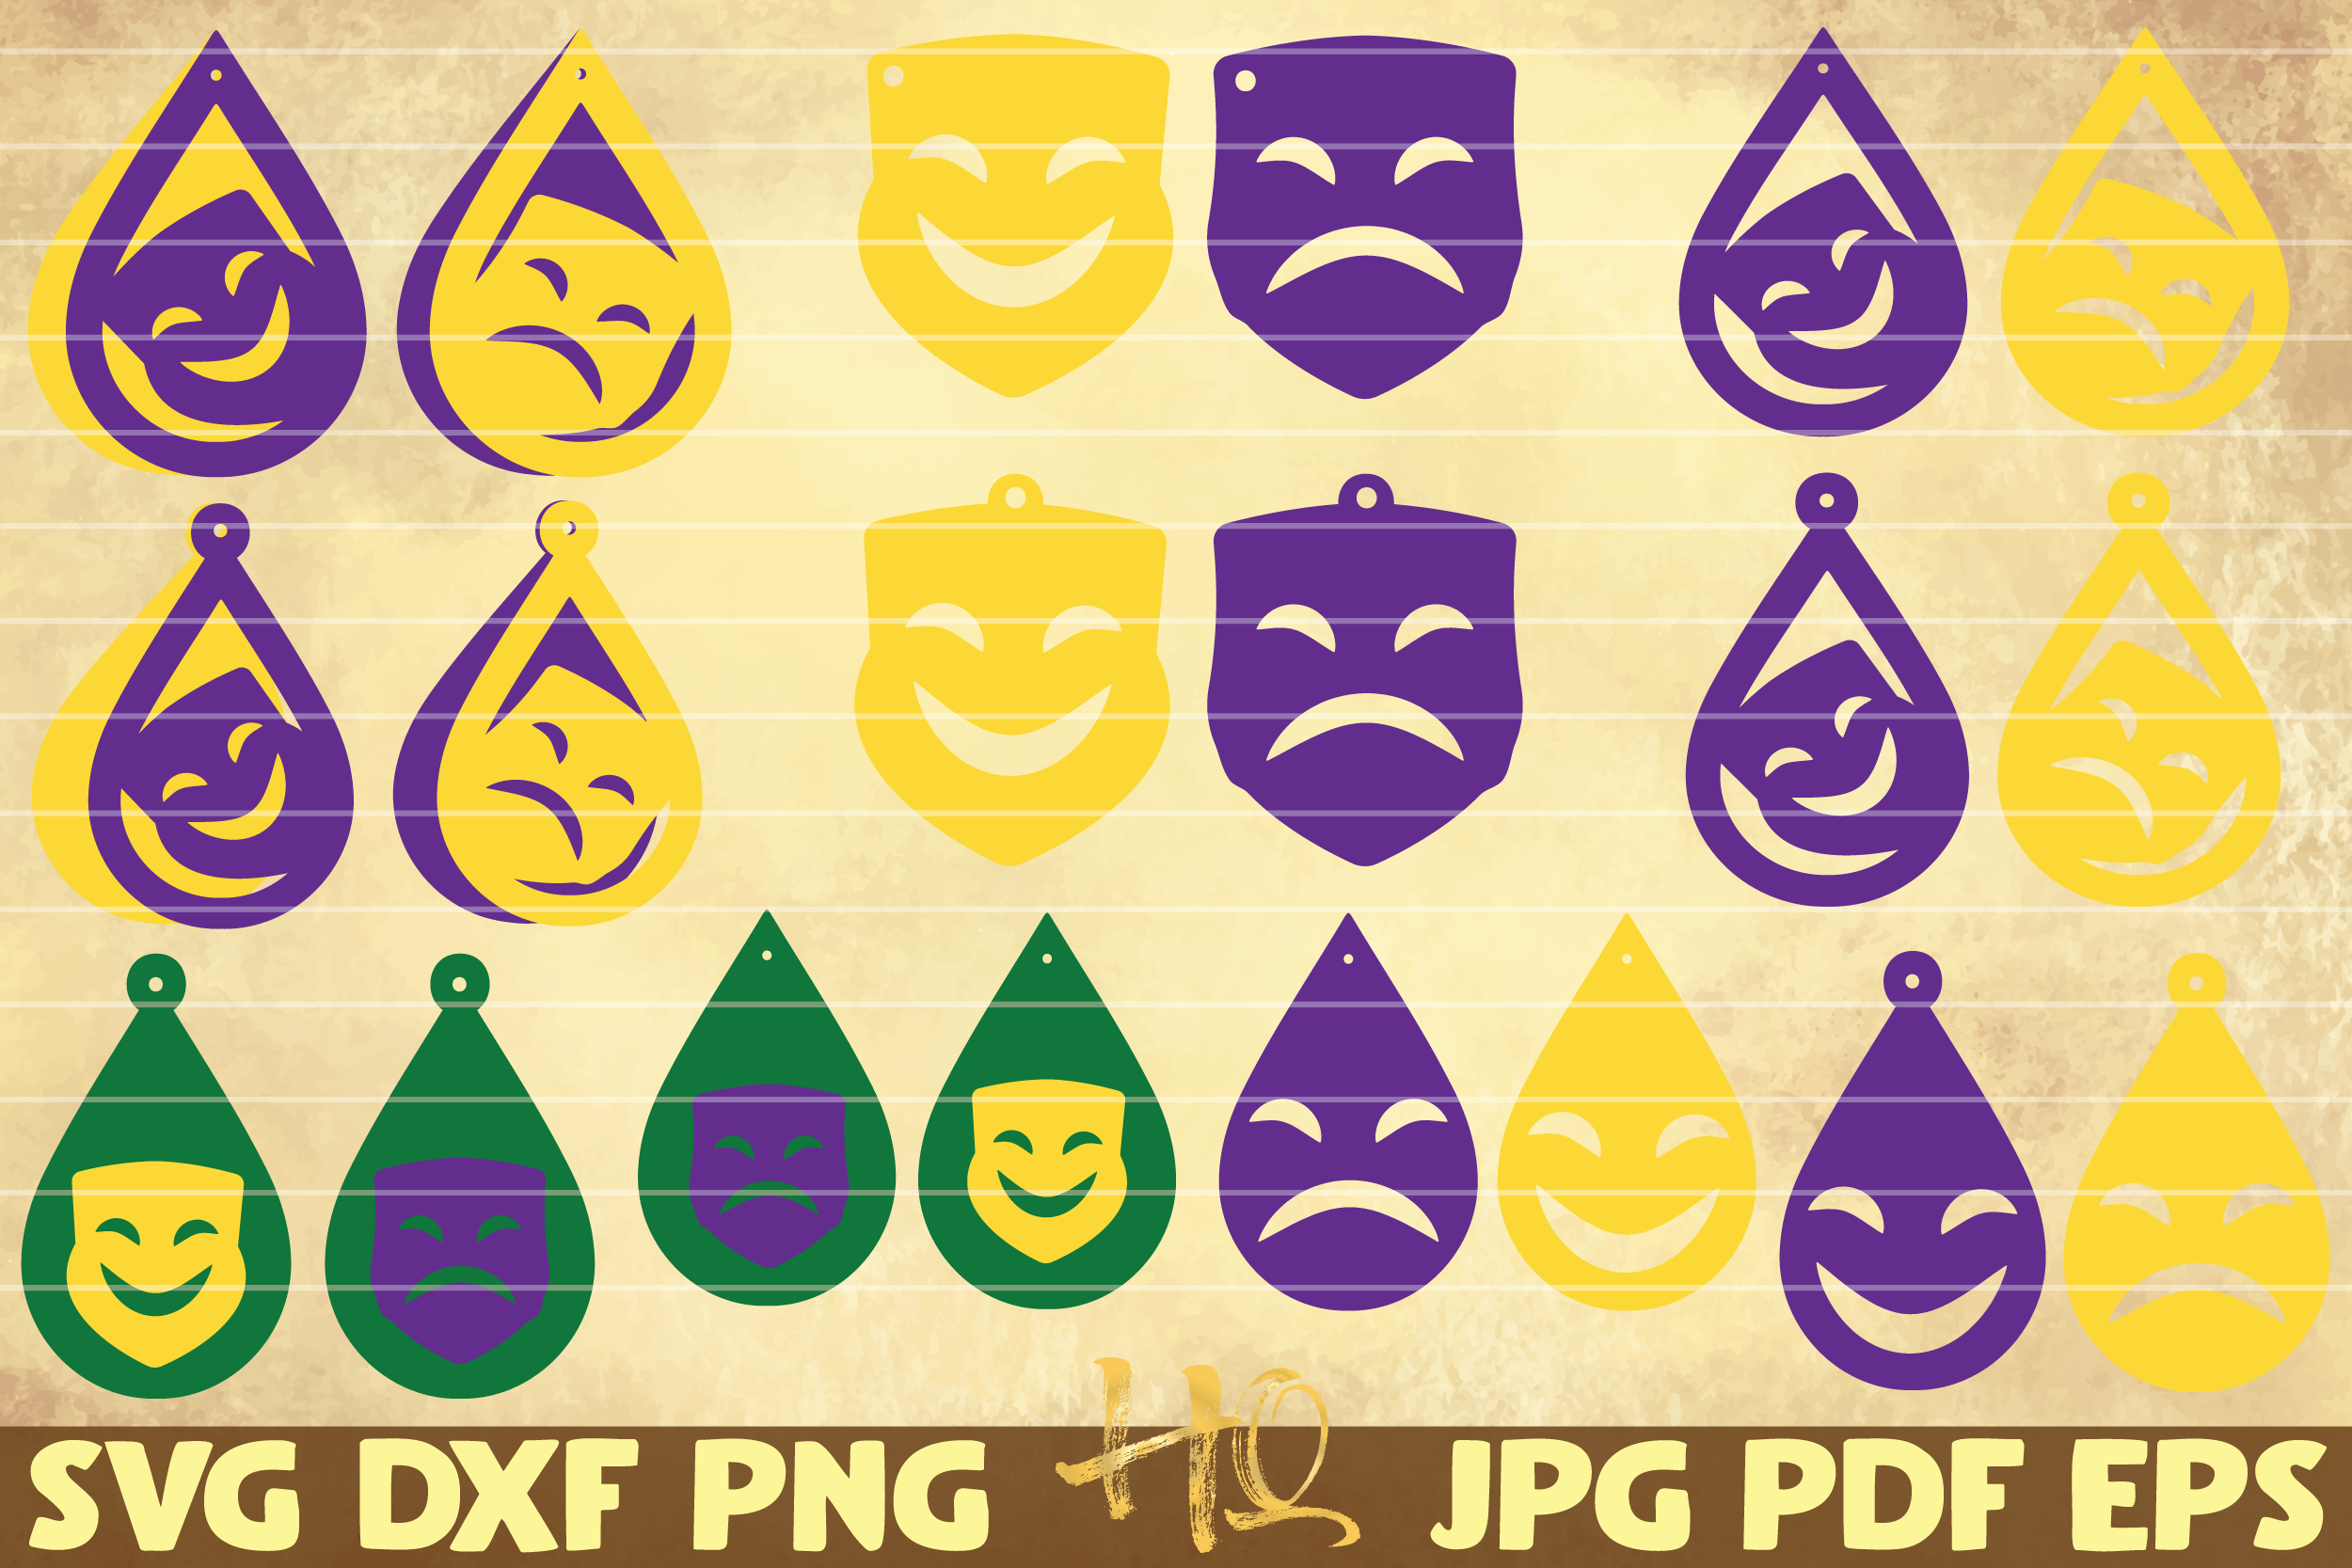 Download Free 20 Theater Masks Earrings Mardi Gras Graphic By Mihaibadea95 for Cricut Explore, Silhouette and other cutting machines.